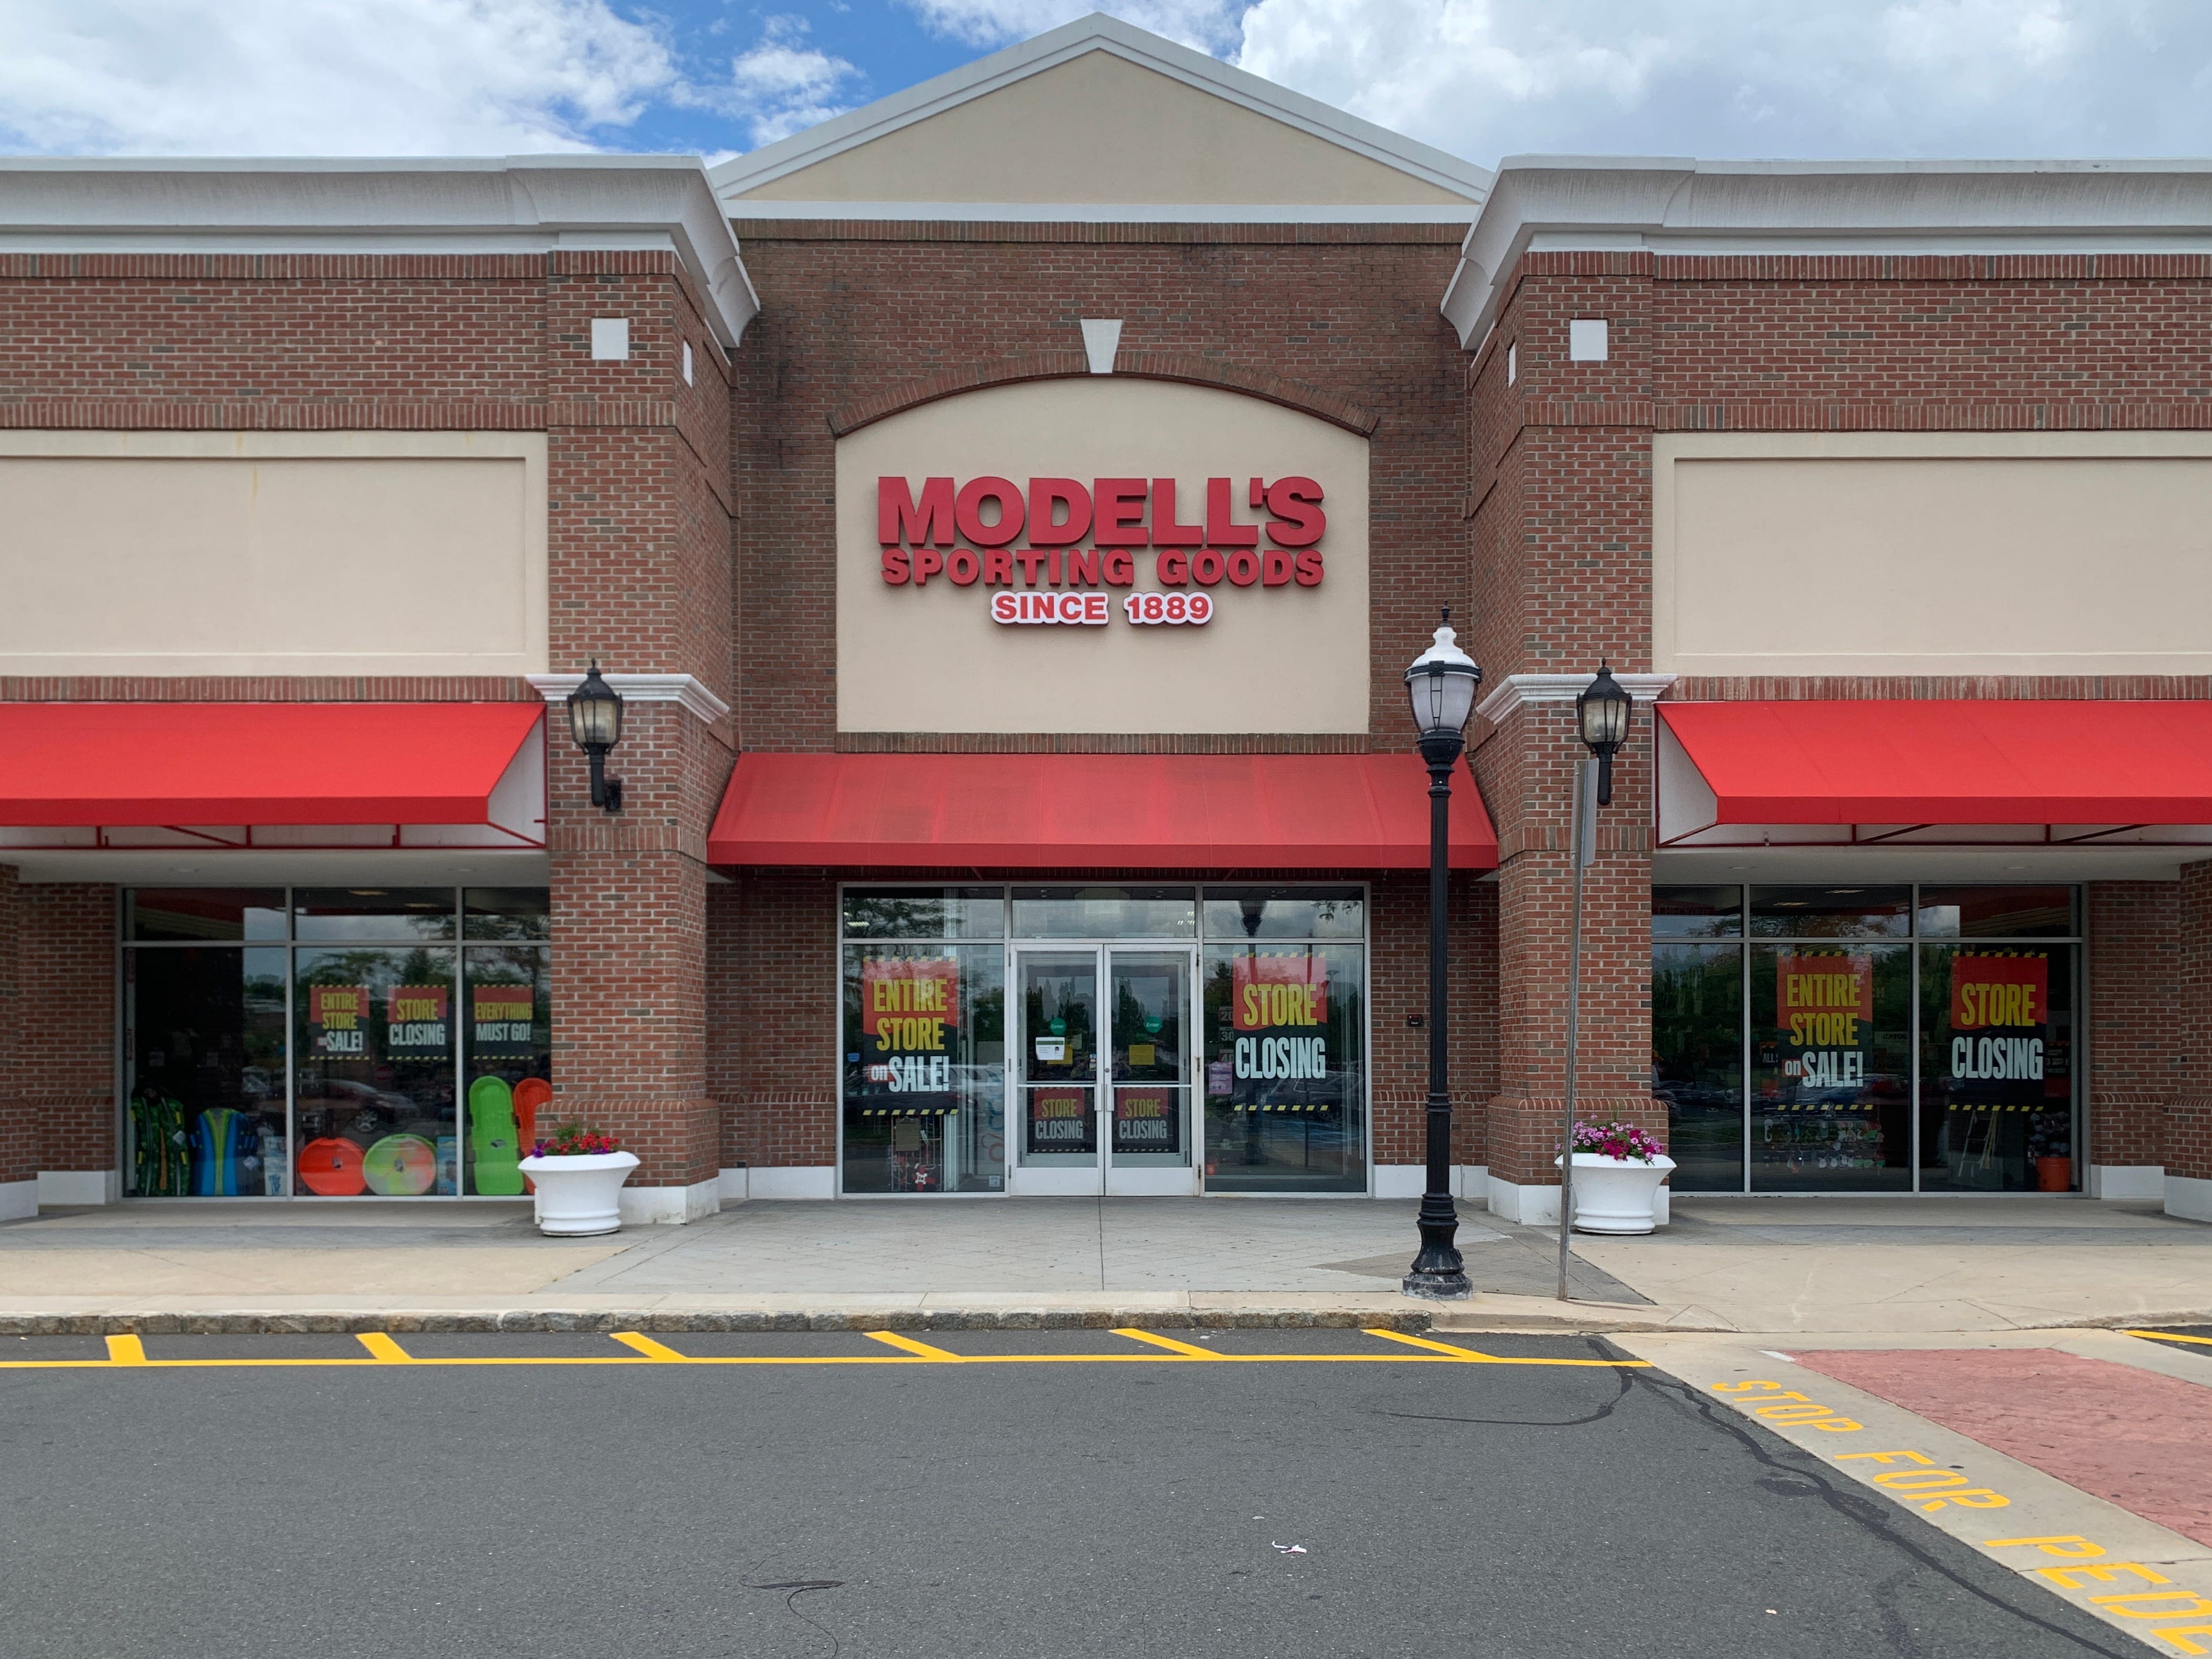 Modell's restarts going-out-of-business sales post COVID-19 shutdown